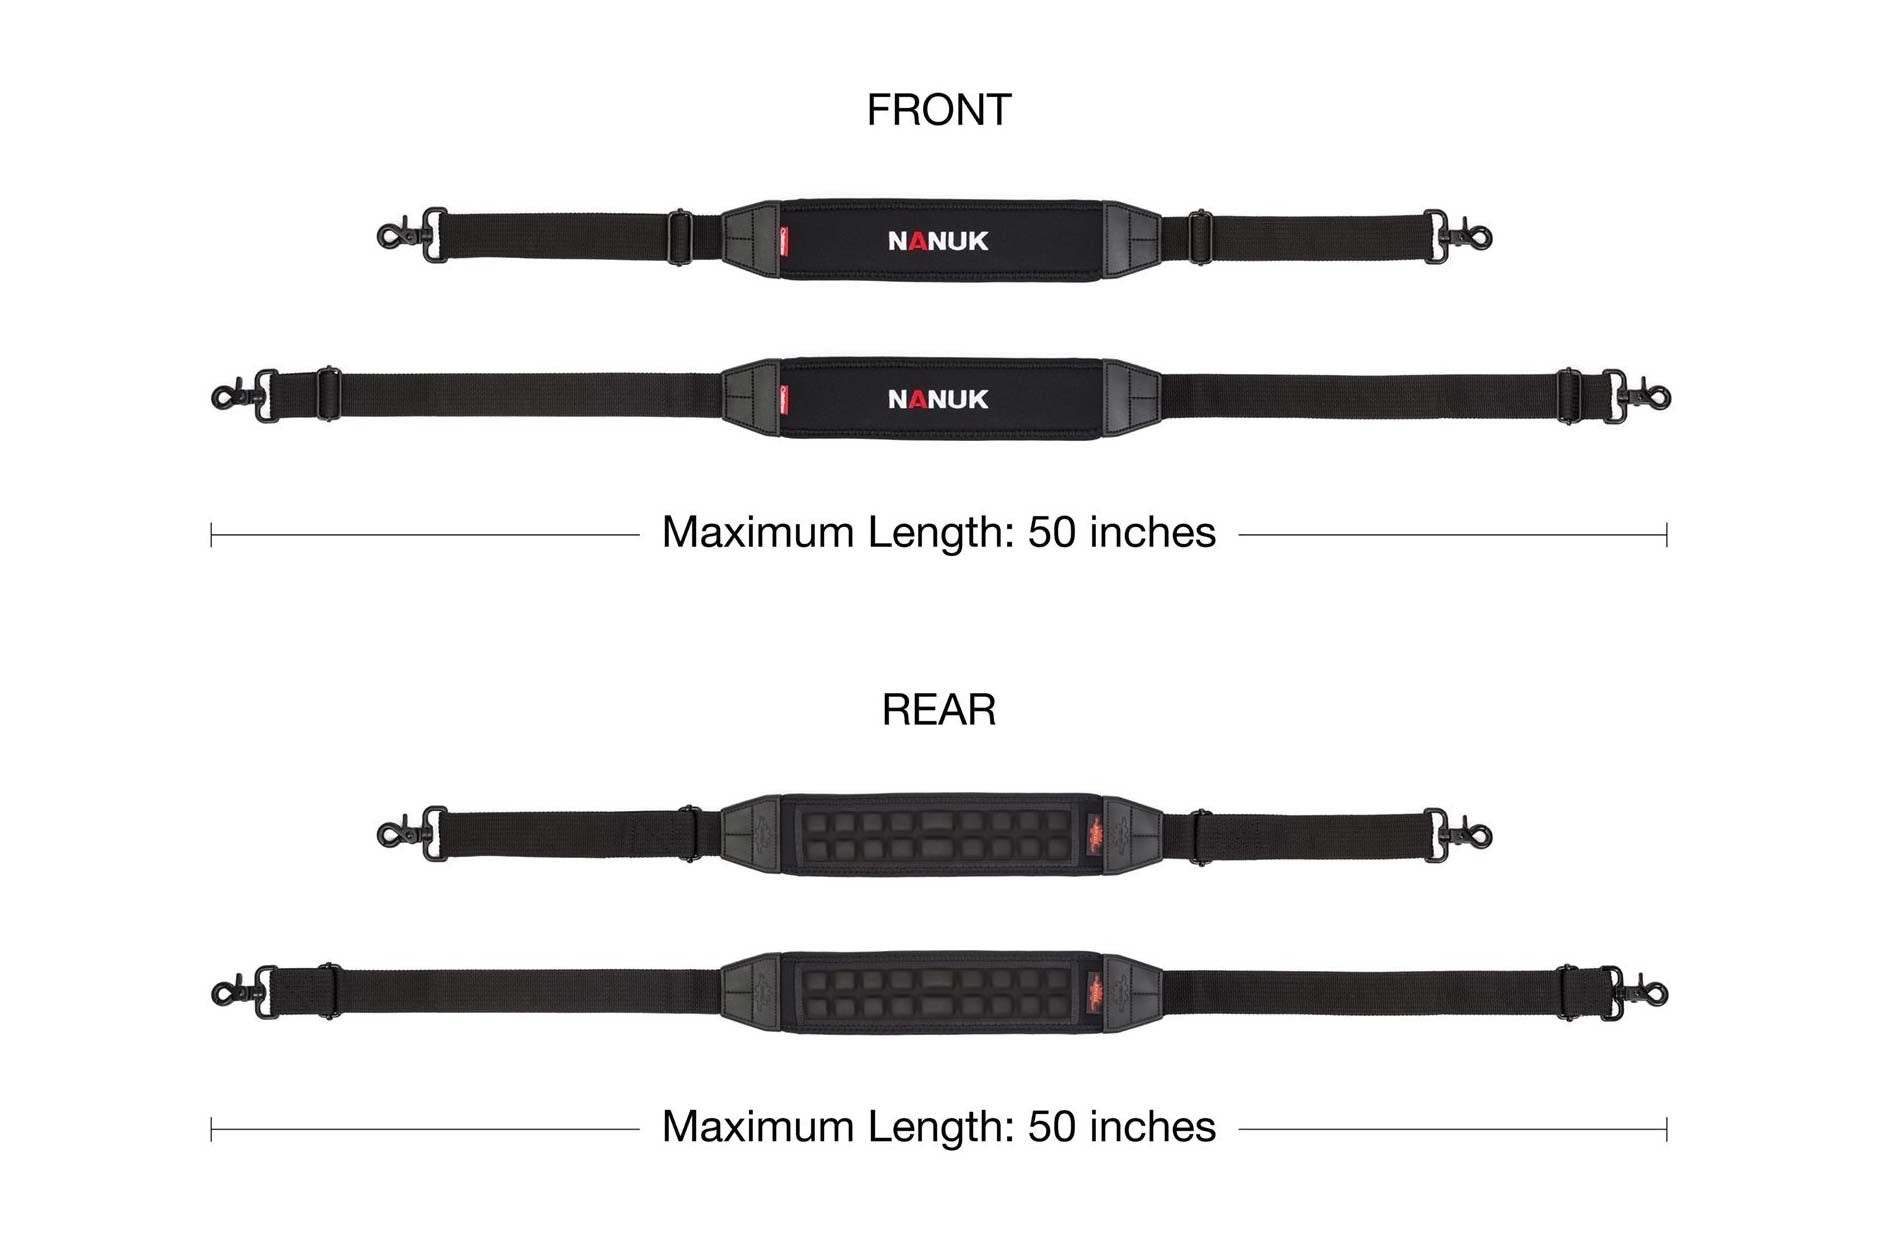 Dimensions of the Nanuk Shoulder Strap